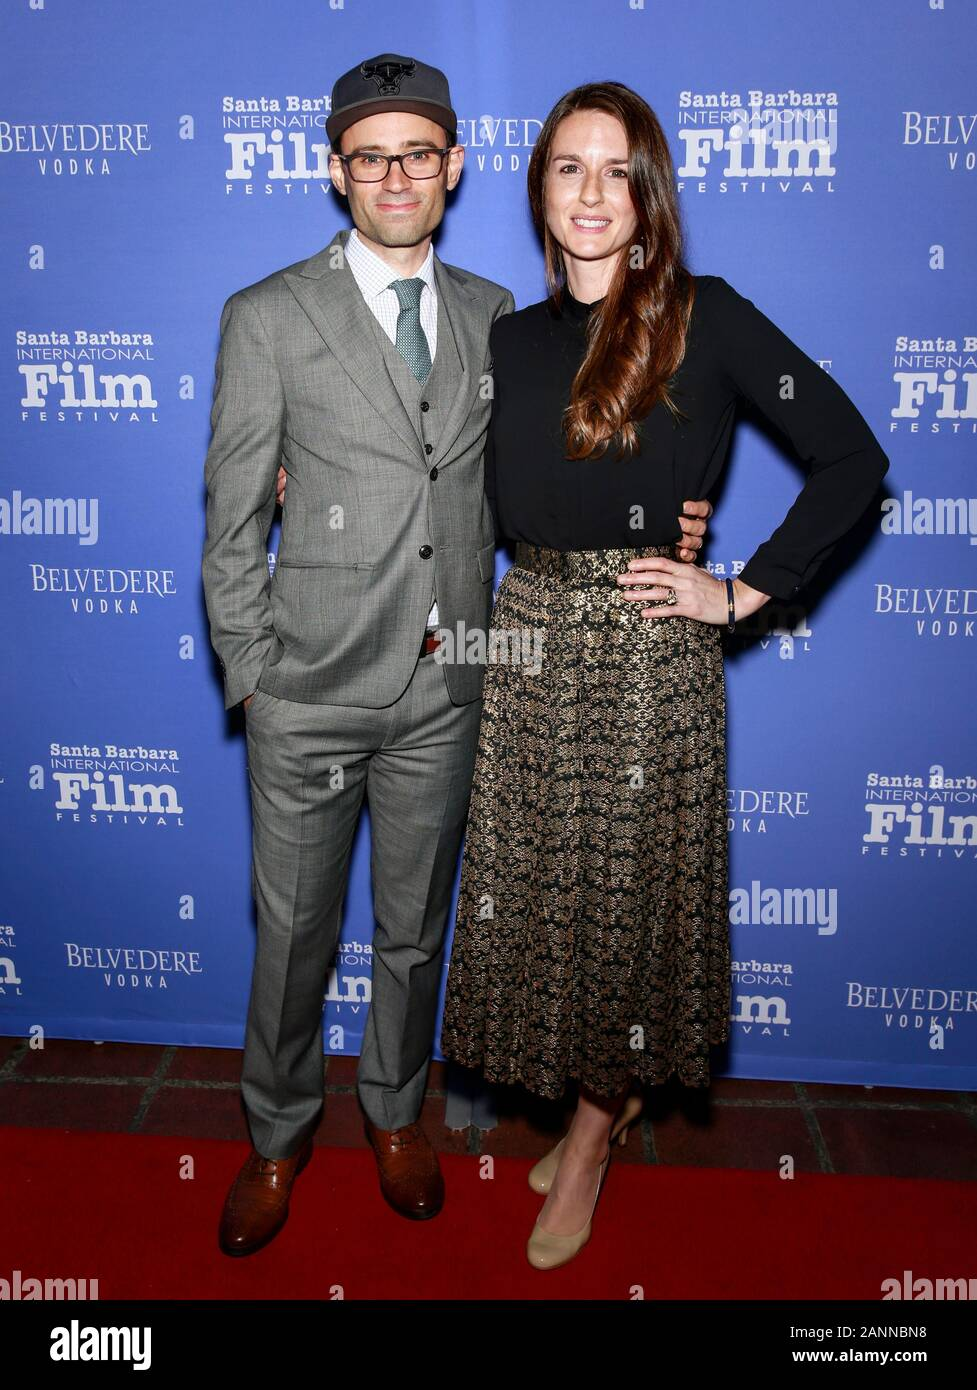 Santa Barbara, CA - Jan 17, 2020: Jonathan Lacocque and Clara Lehmann attend the Outstanding Performers of the Year Award during the 35th Santa Barbar Stock Photo